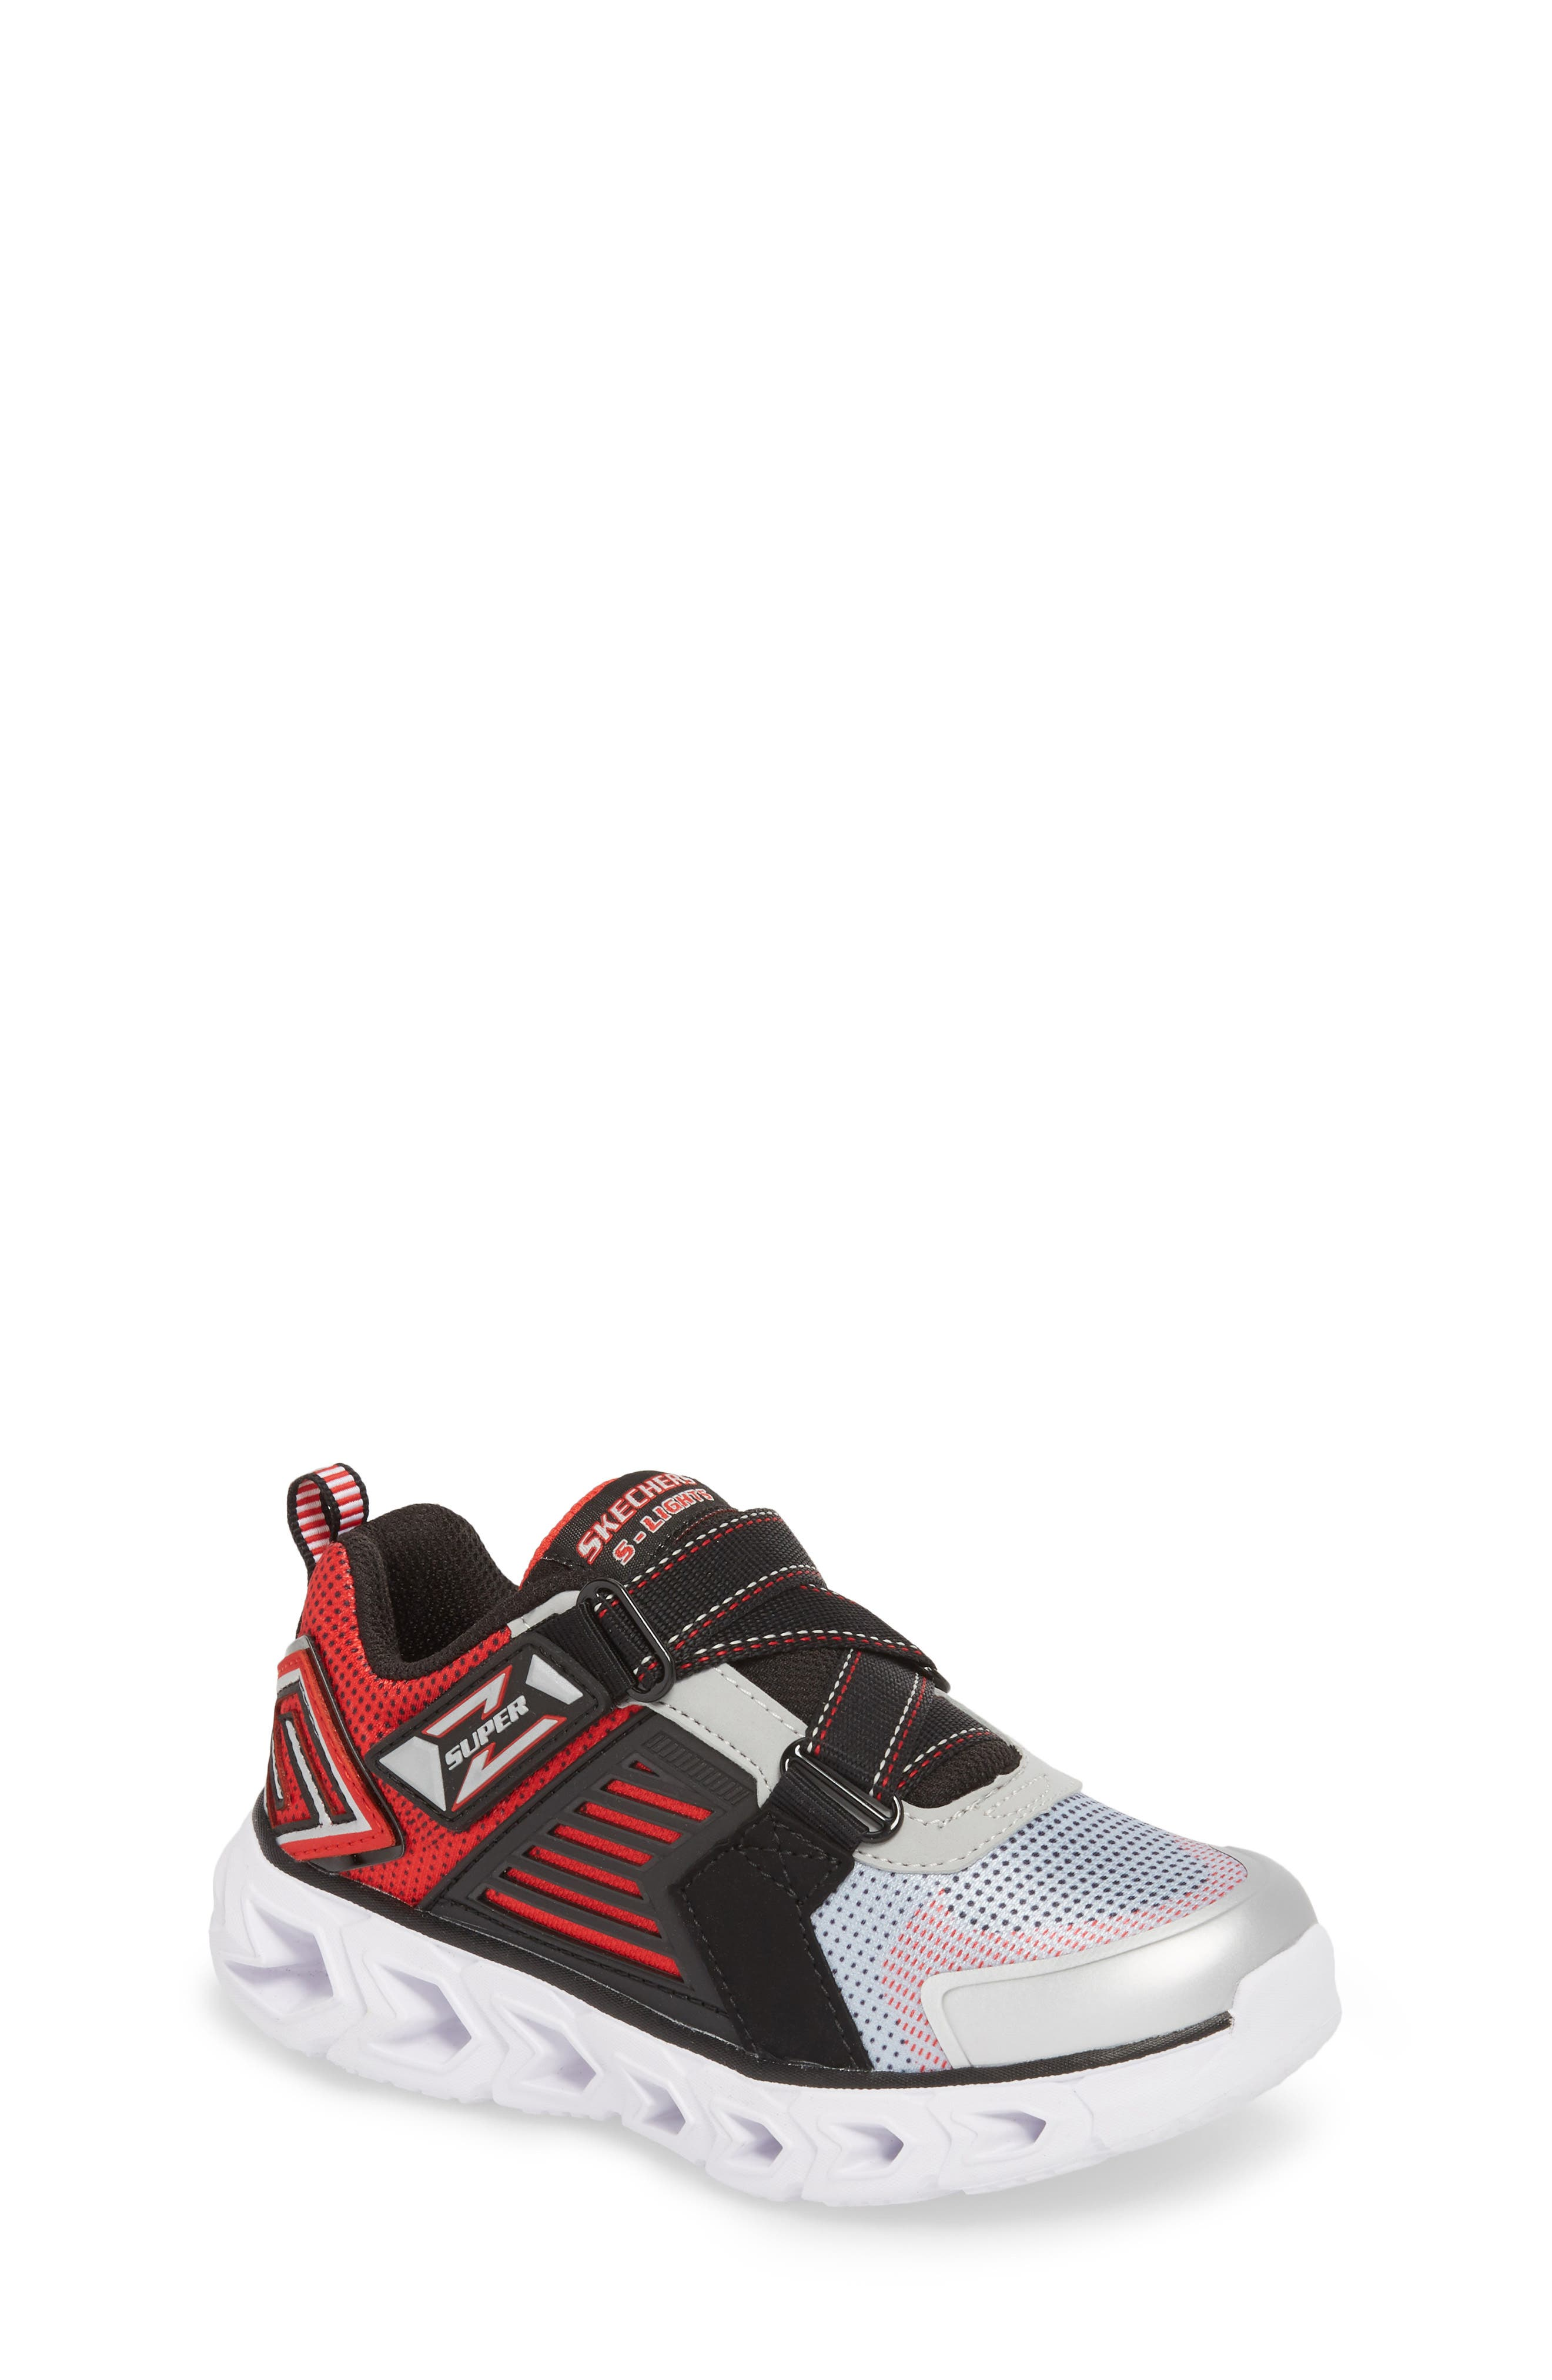 Hypno-Flash 2.0 Rapid Quake Sneakers,                         Main,                         color, Silver/ Black